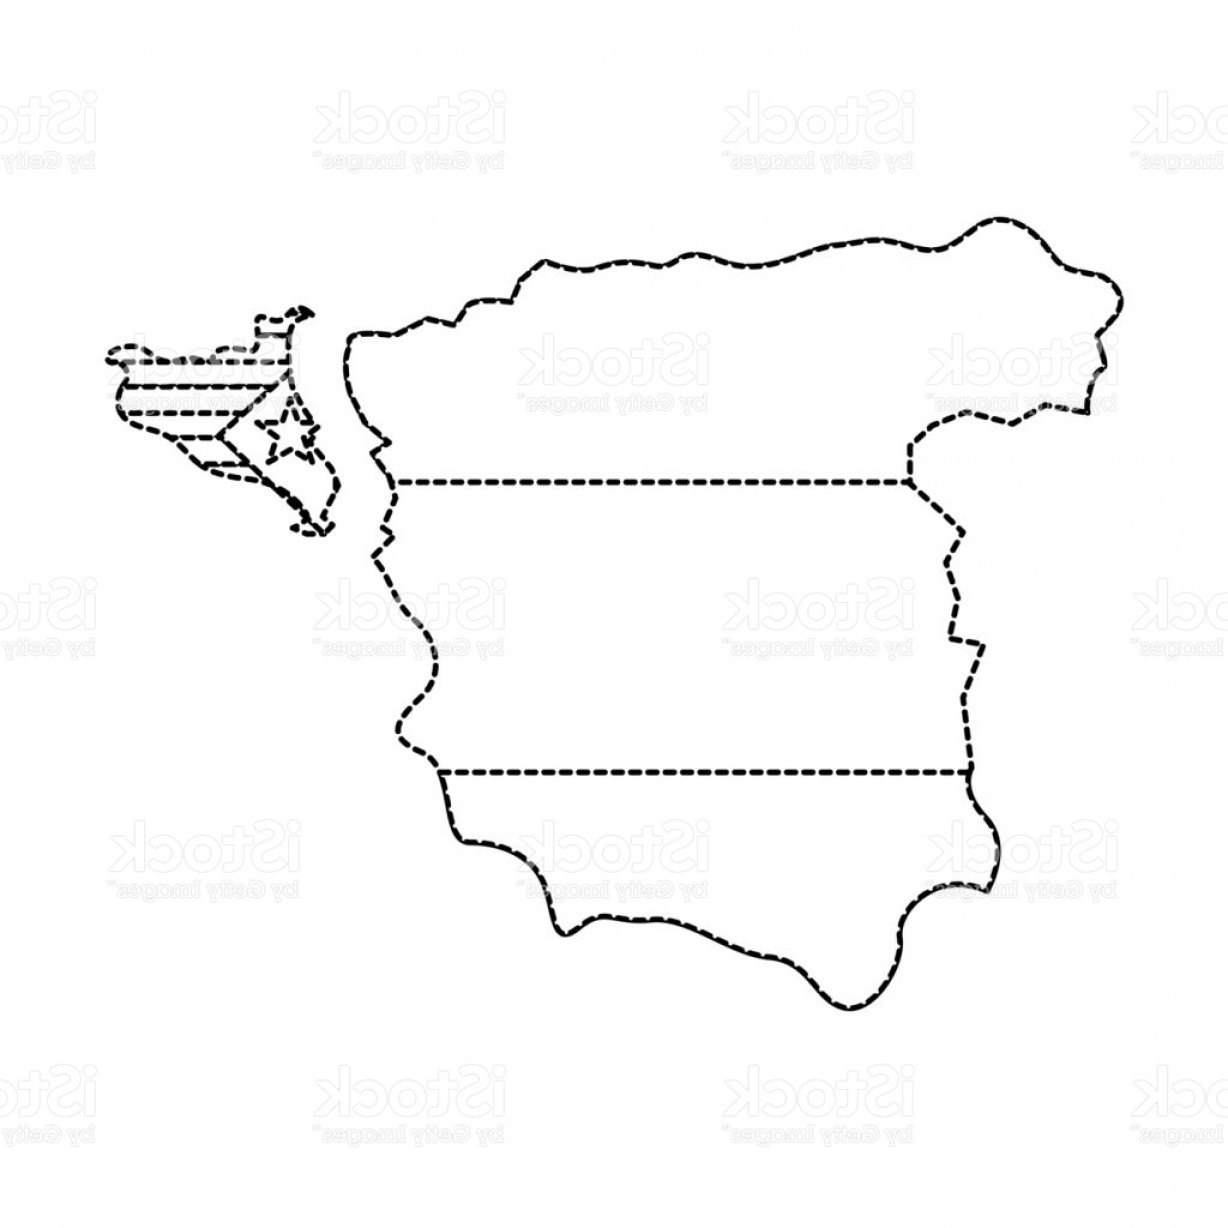 Spain Outline Vector: Catalunya Flag And Country Outline Separated From Spain Icon Ima Gm